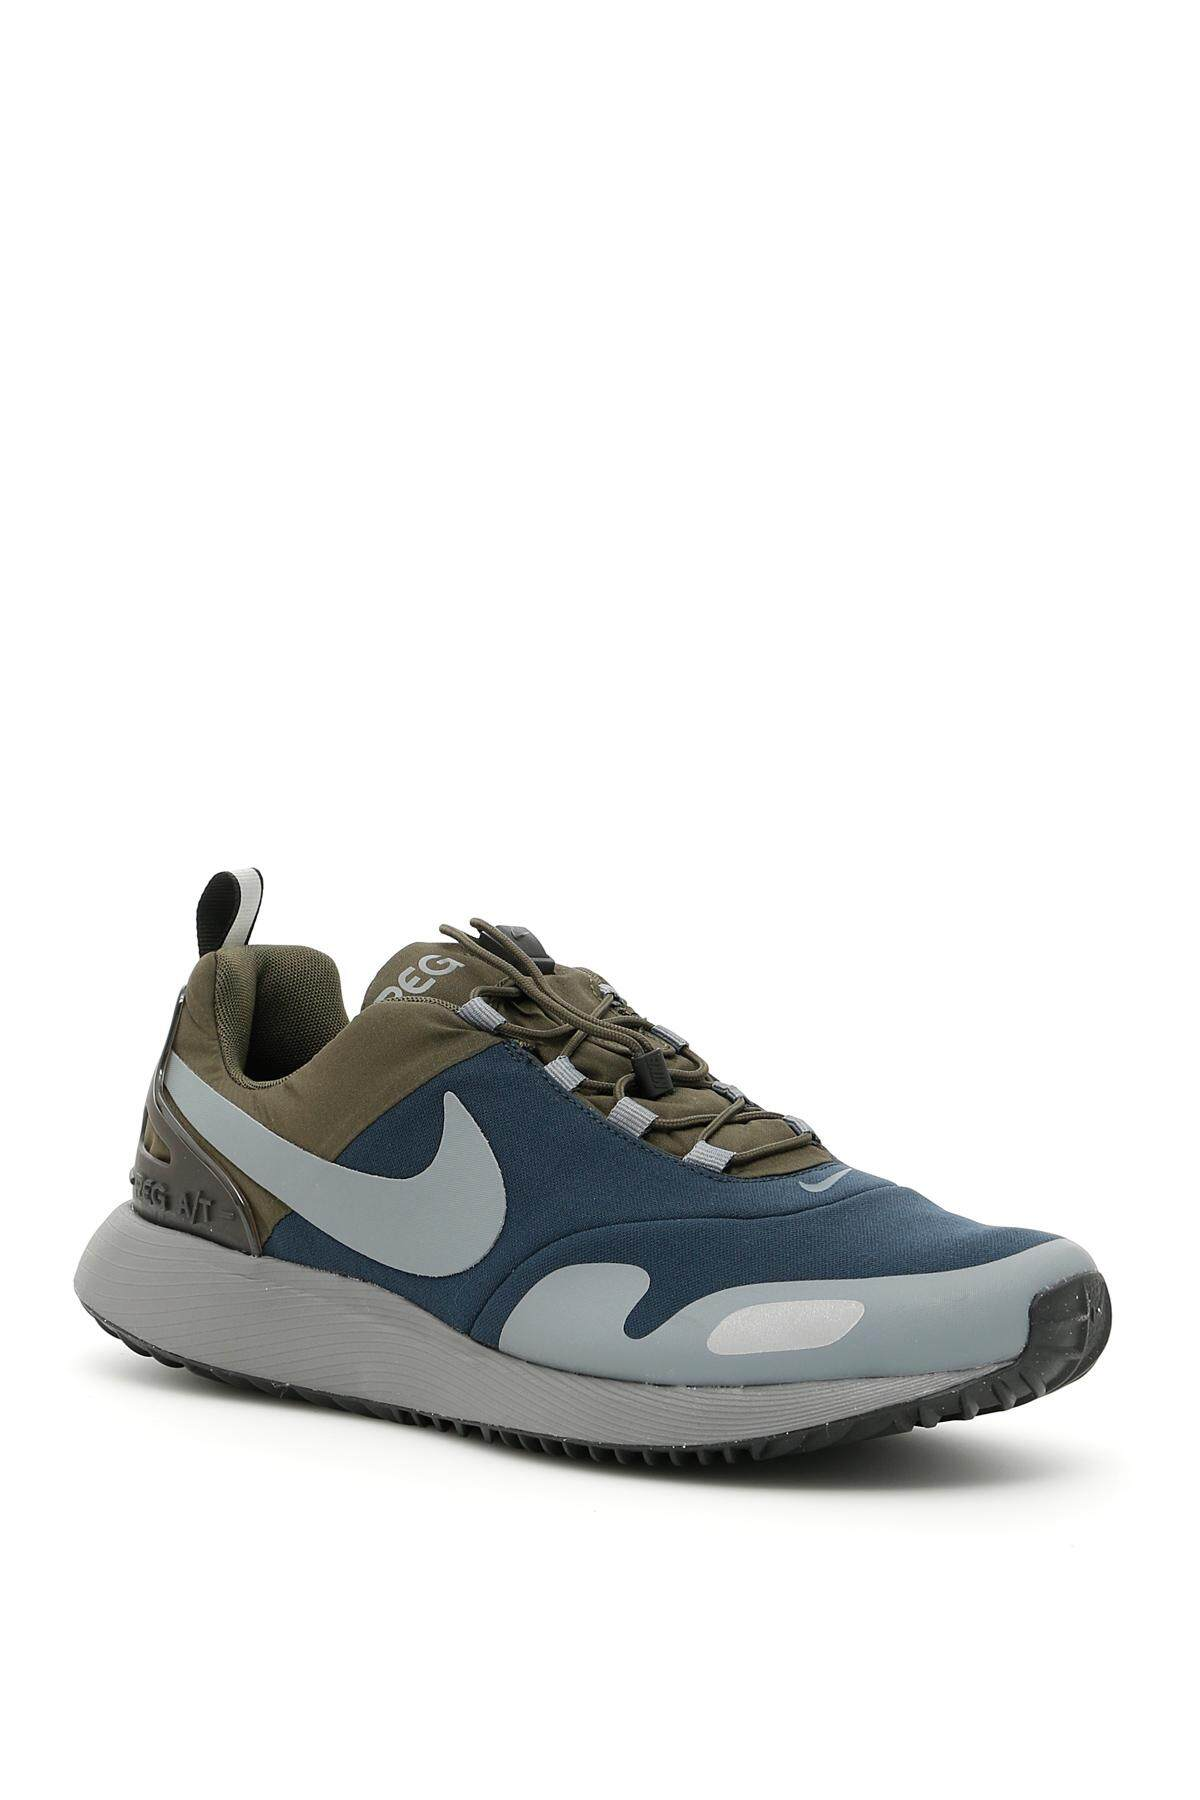 Nike Shoes for Men Philippines - Nike Mens Fashion Shoes for sale ... c0fa7e255636a